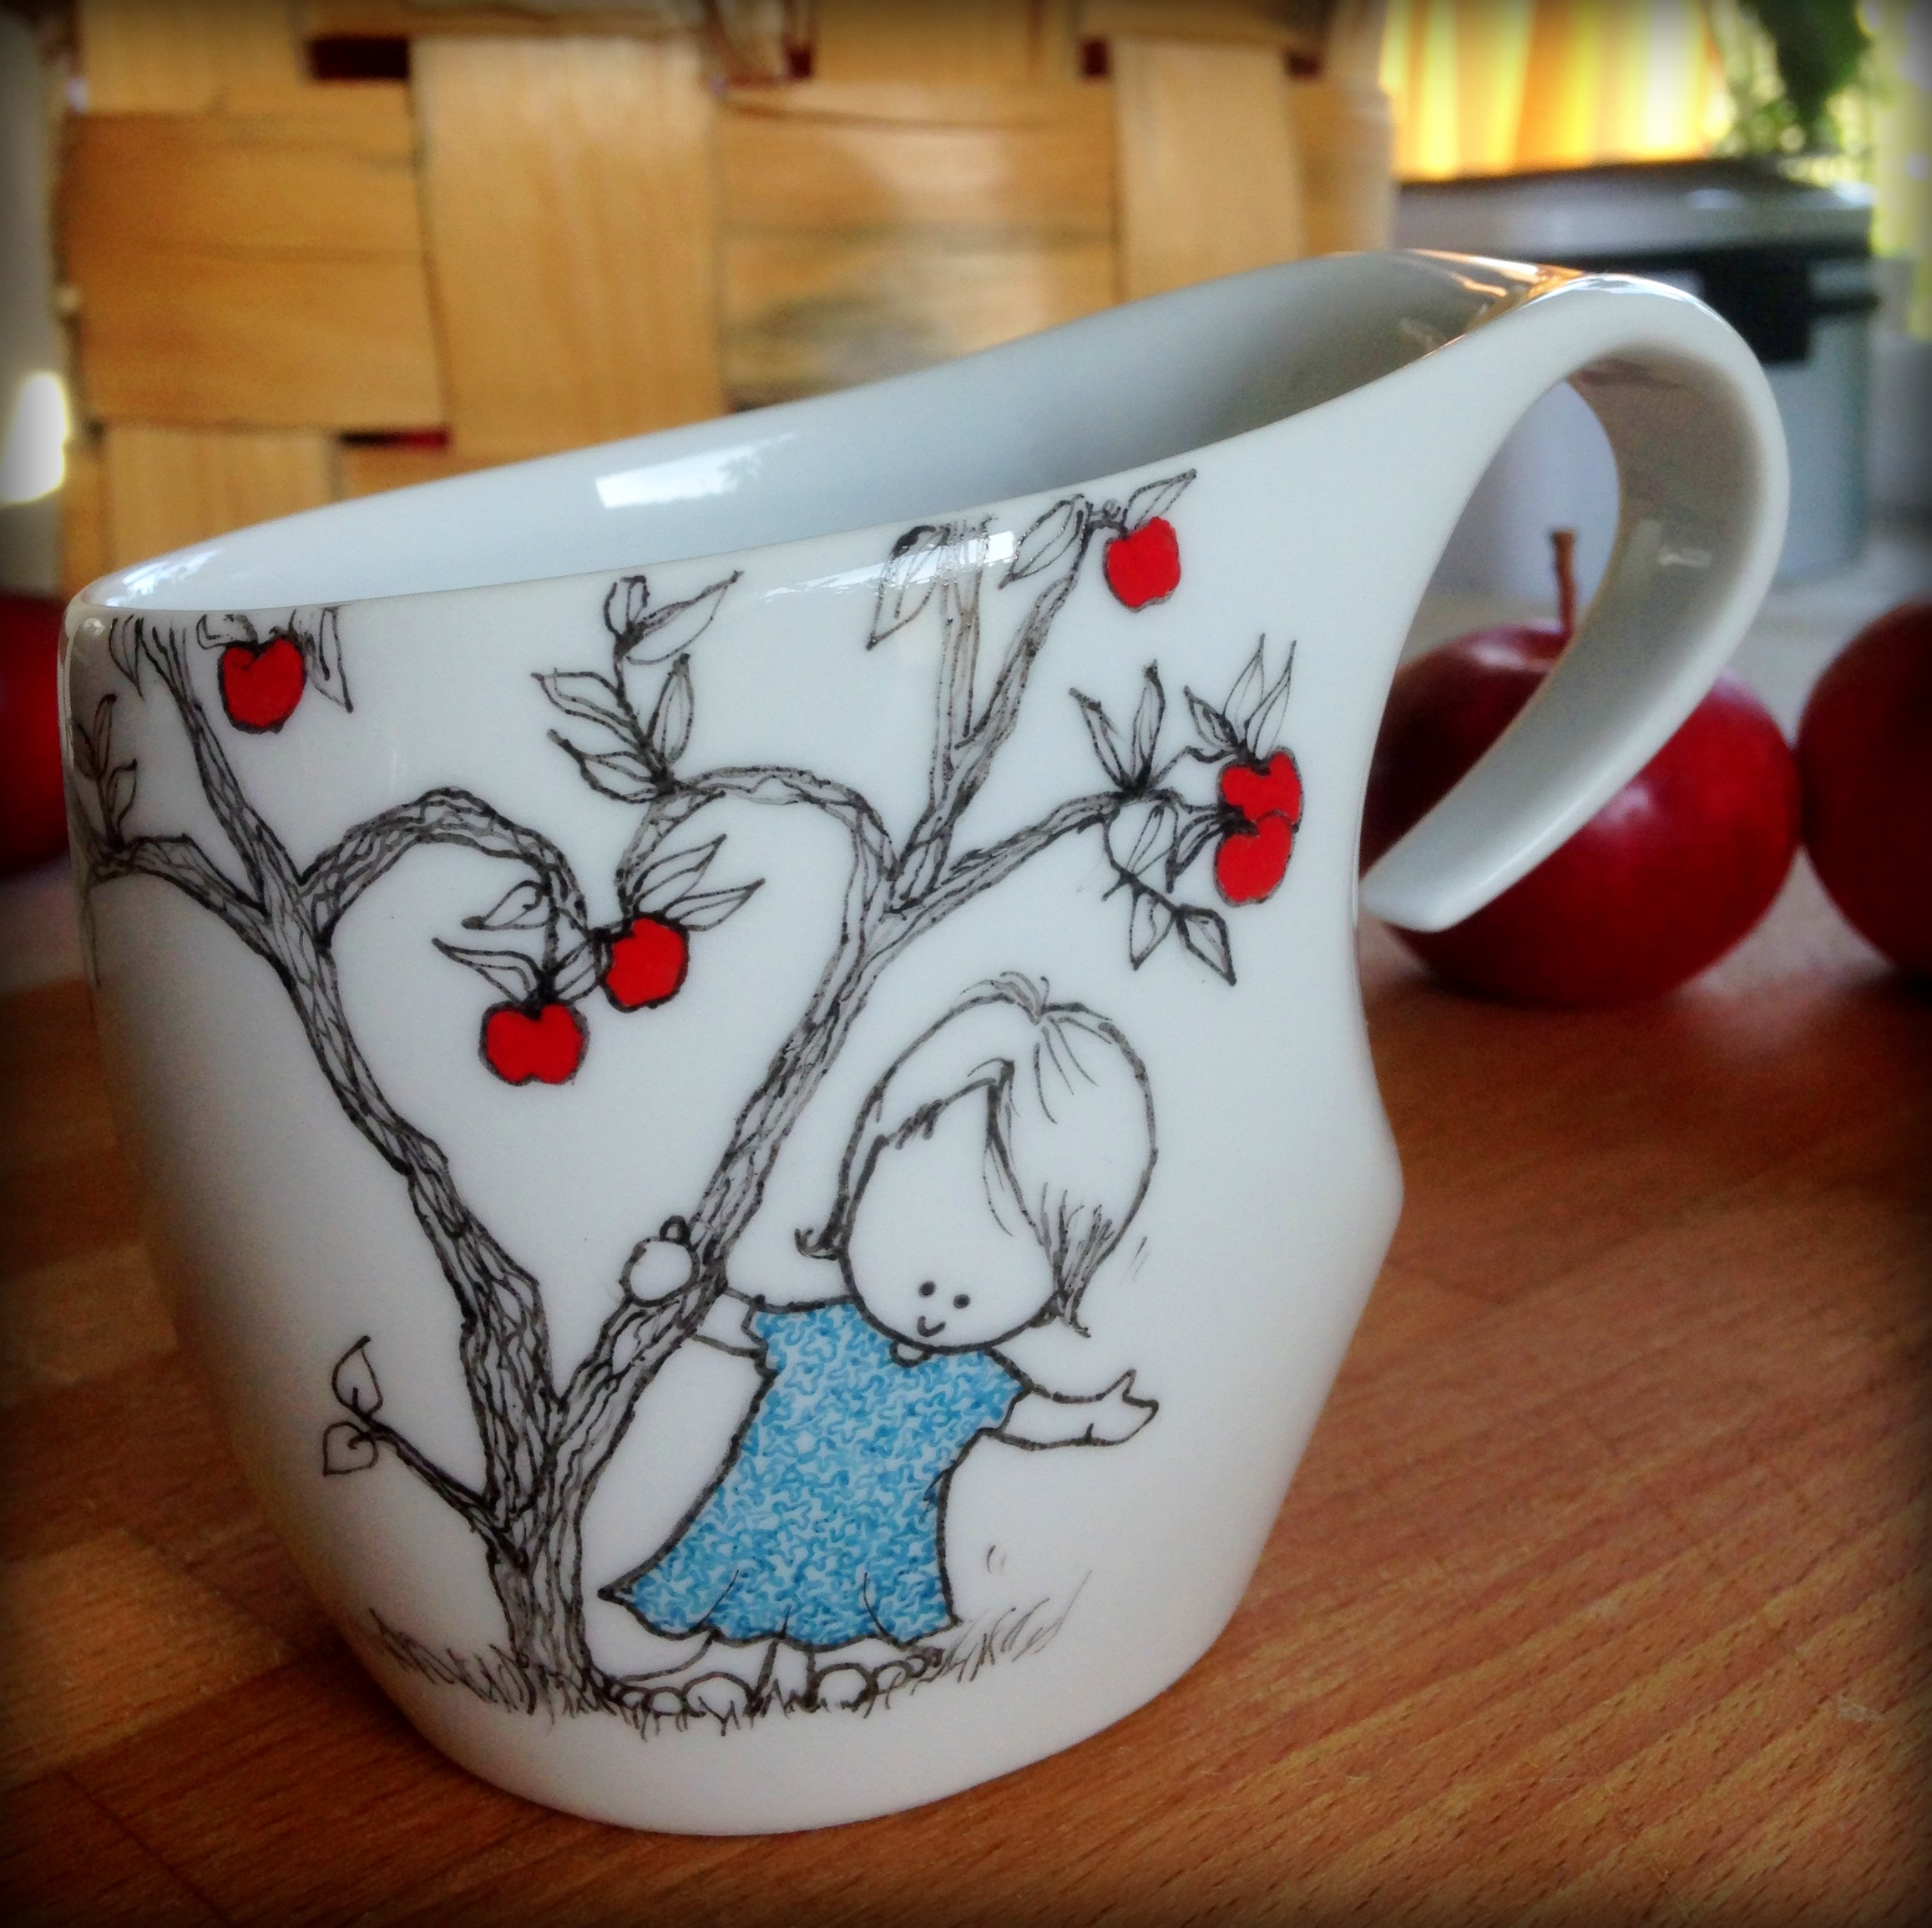 Next, some paint and firing and the mug is ready!